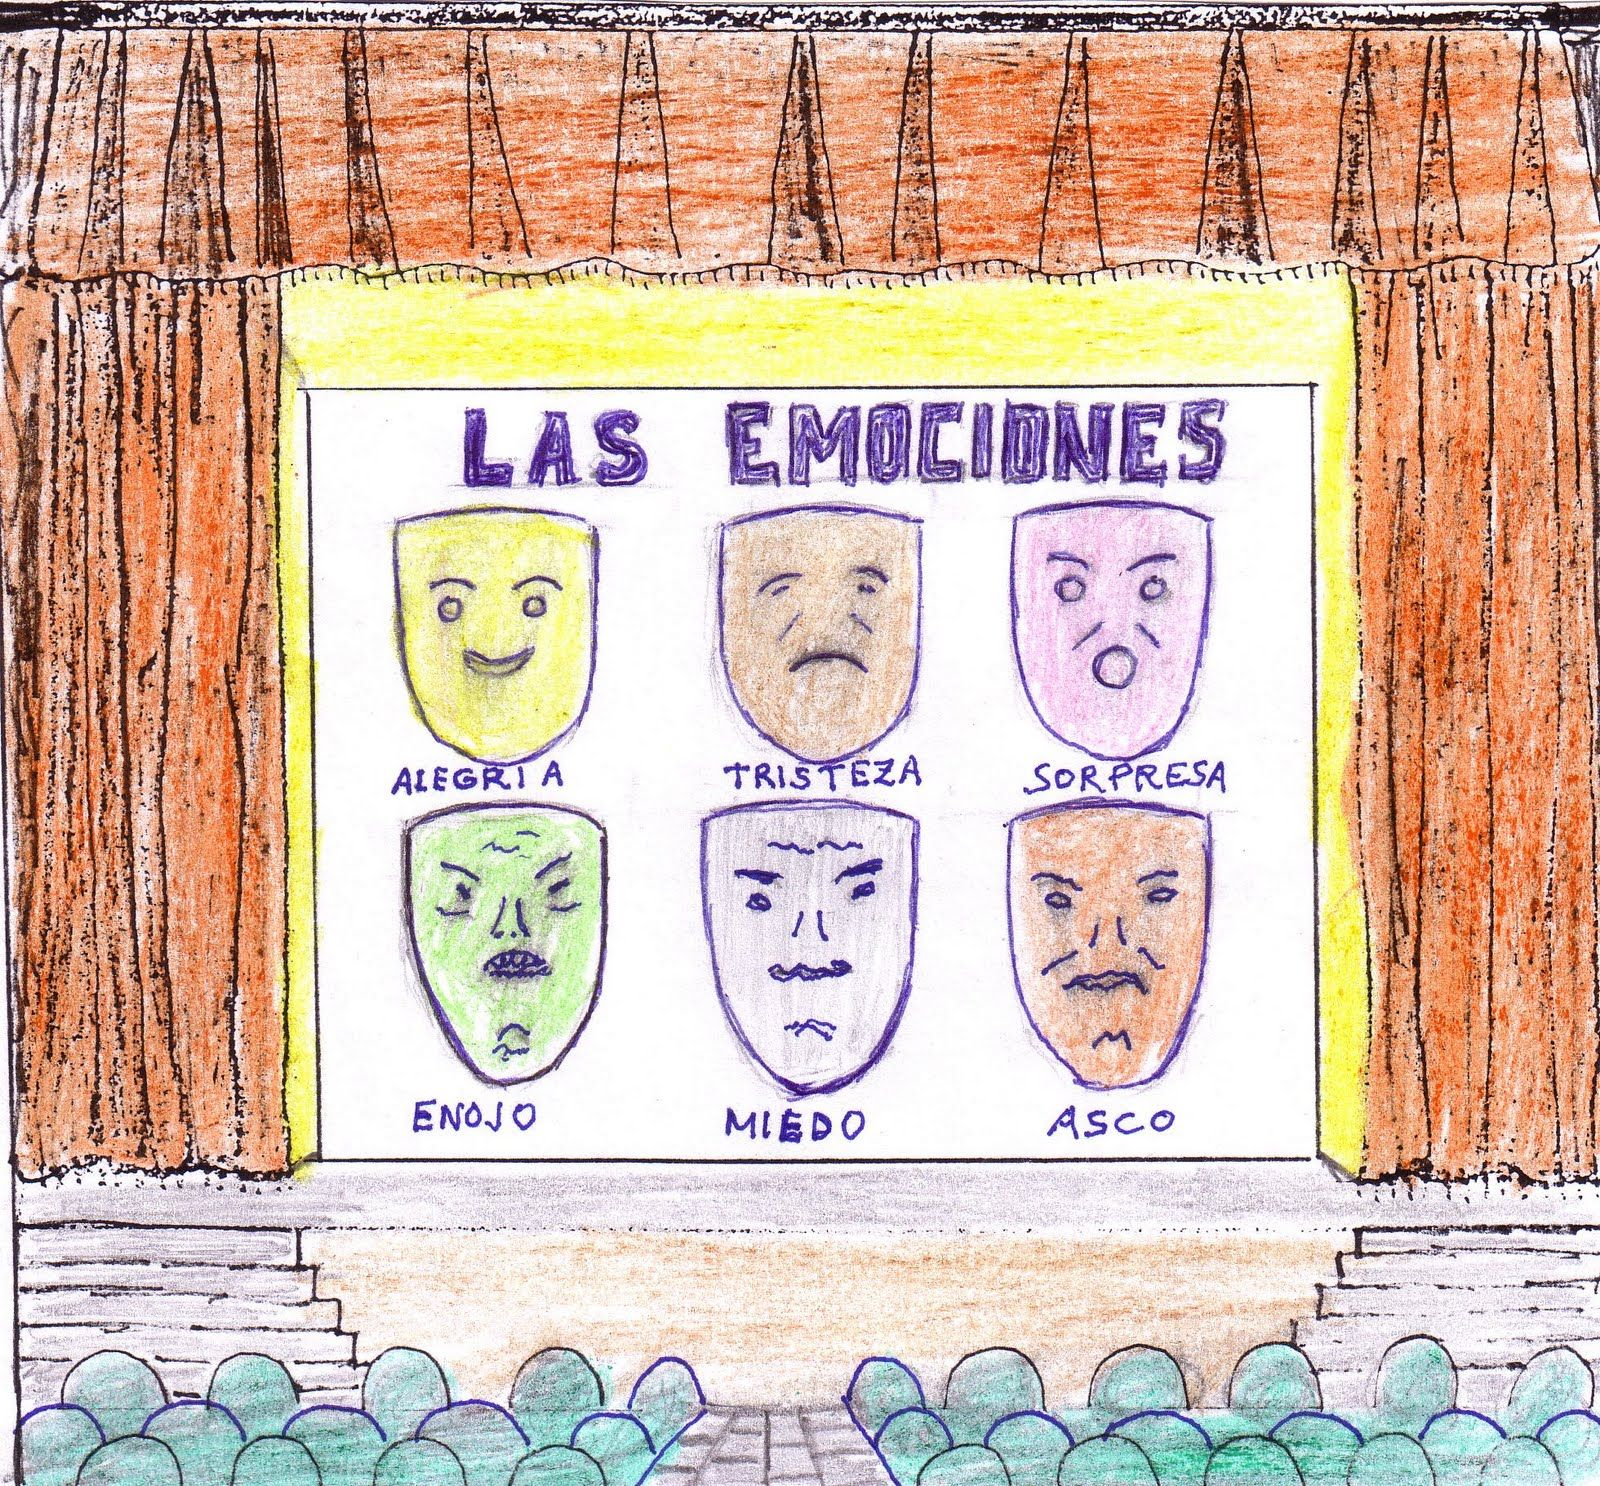 Libros De Obras De Teatro Plays For School Obras De Teatro Para Escolares